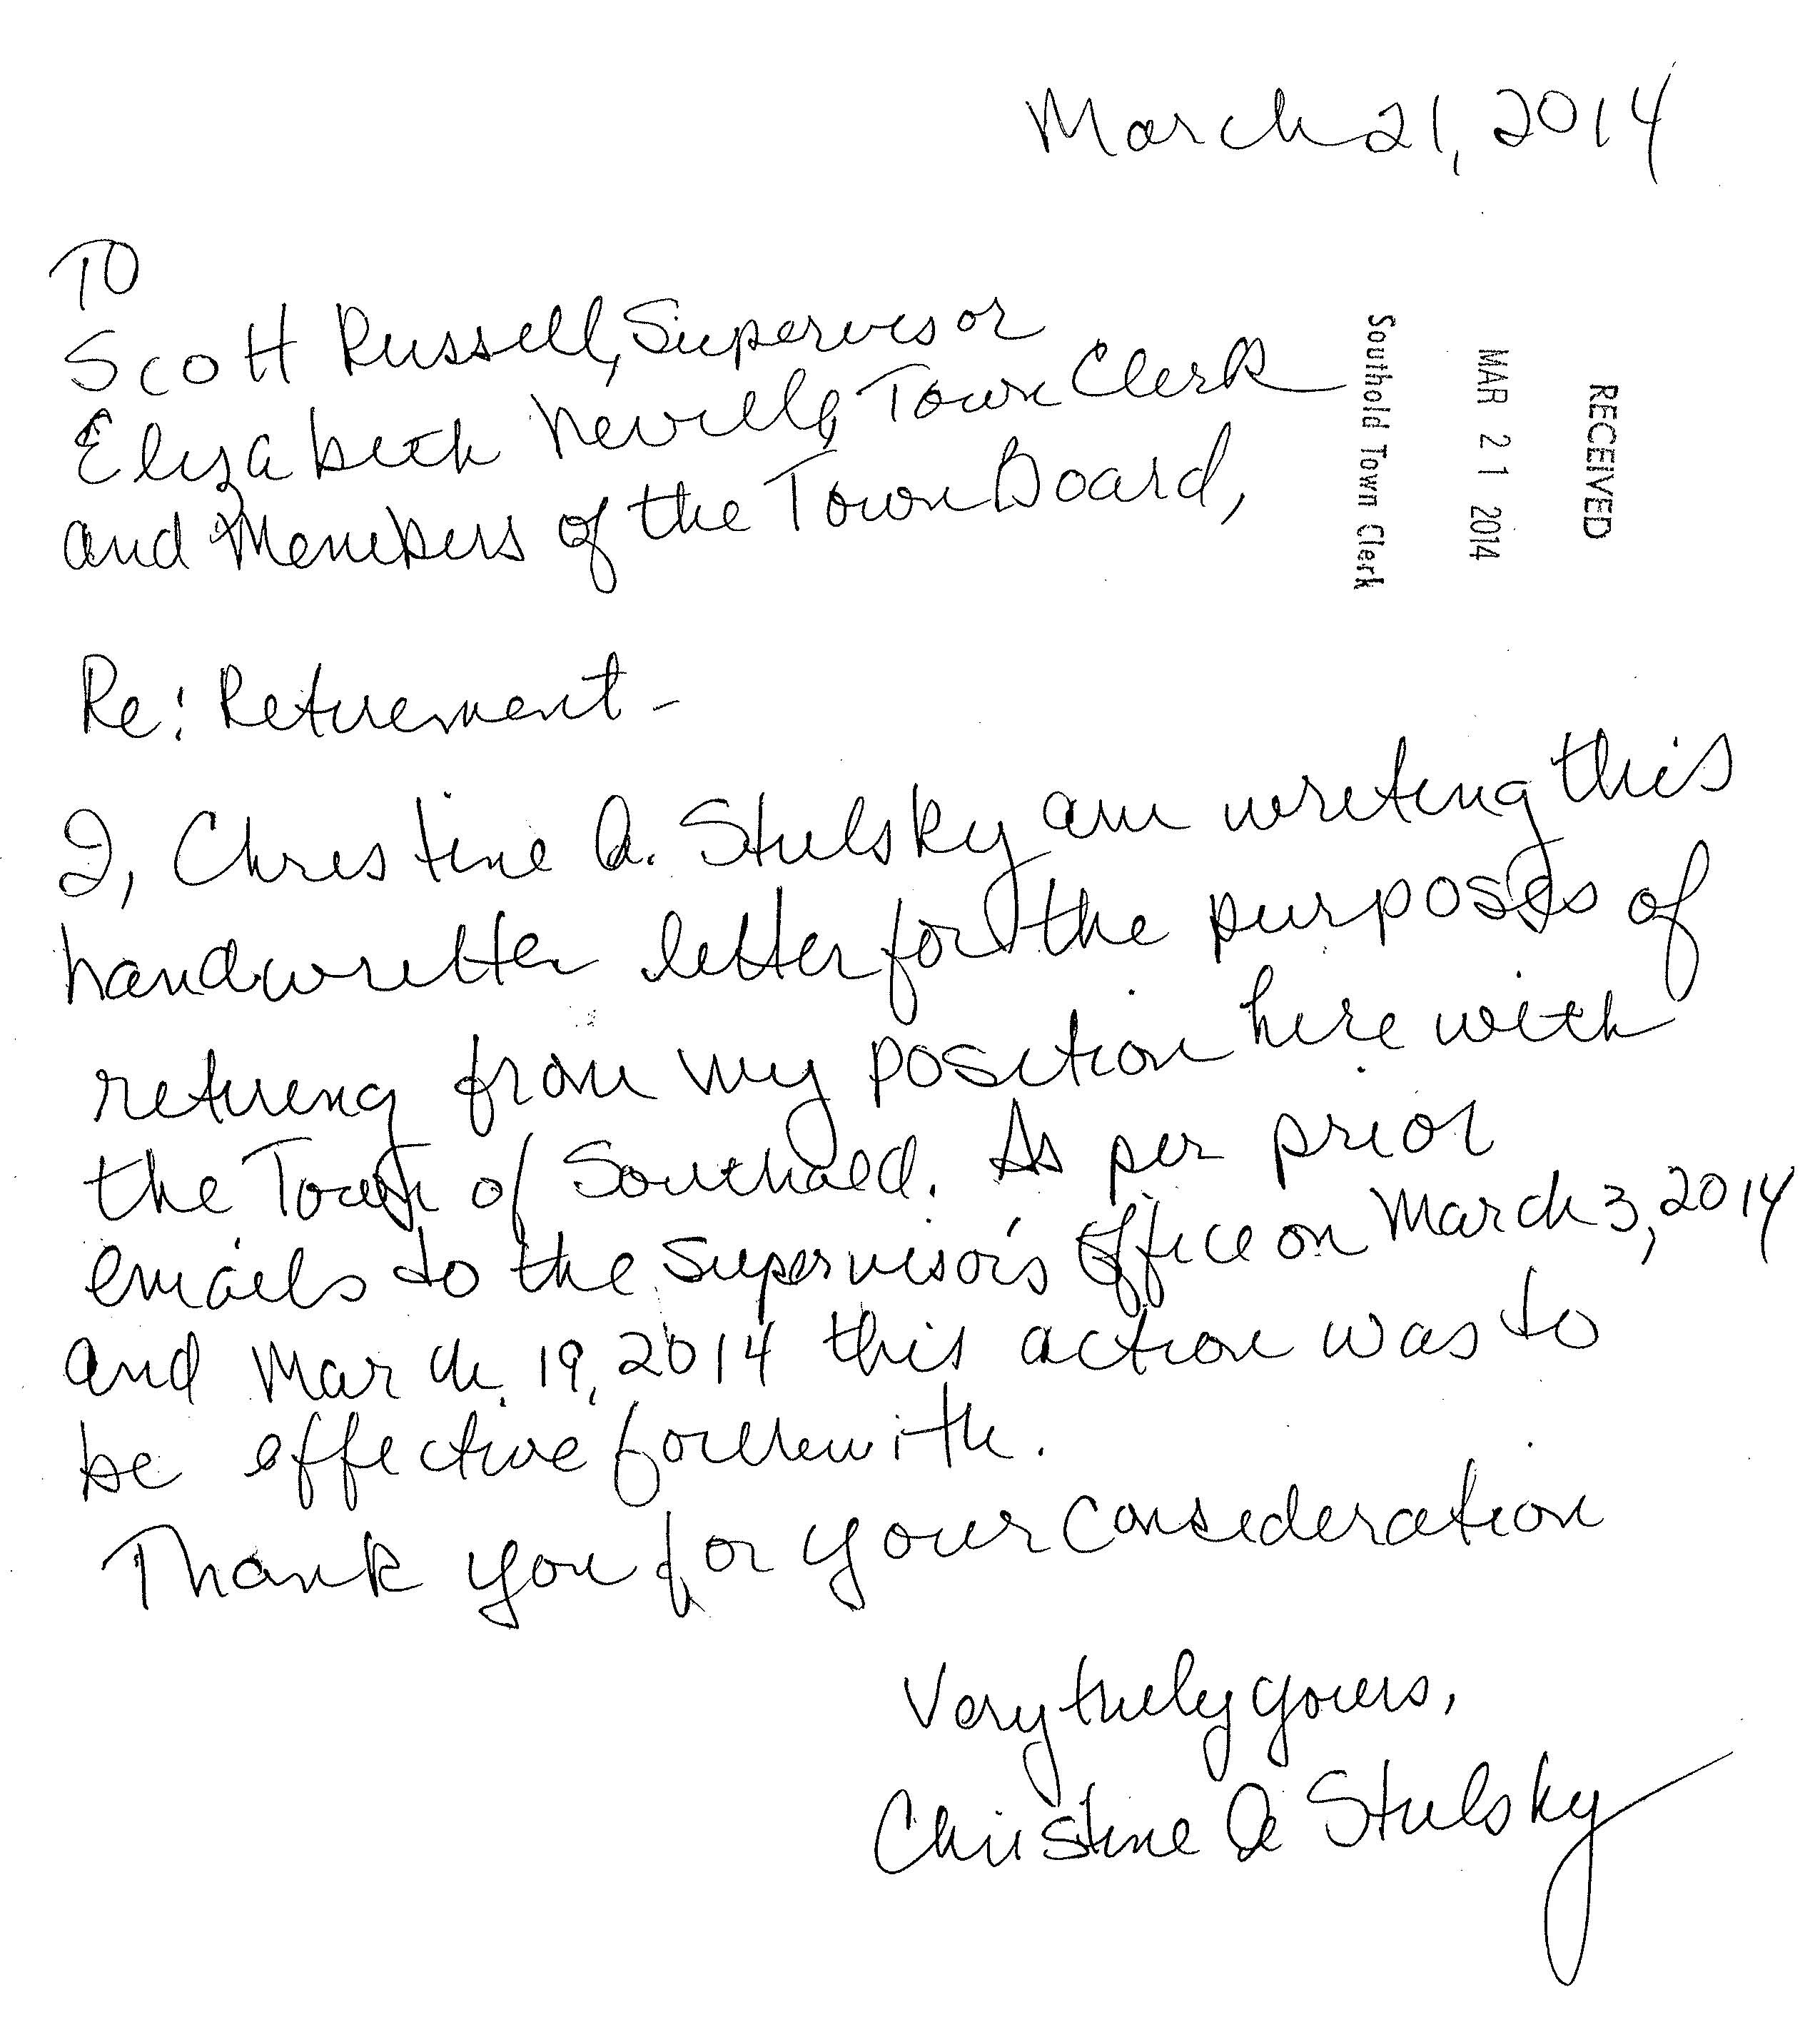 The Handwritten Resignation Letter Submitted By Former Southold Town Justice Court Clerk Christine Stulsky On March